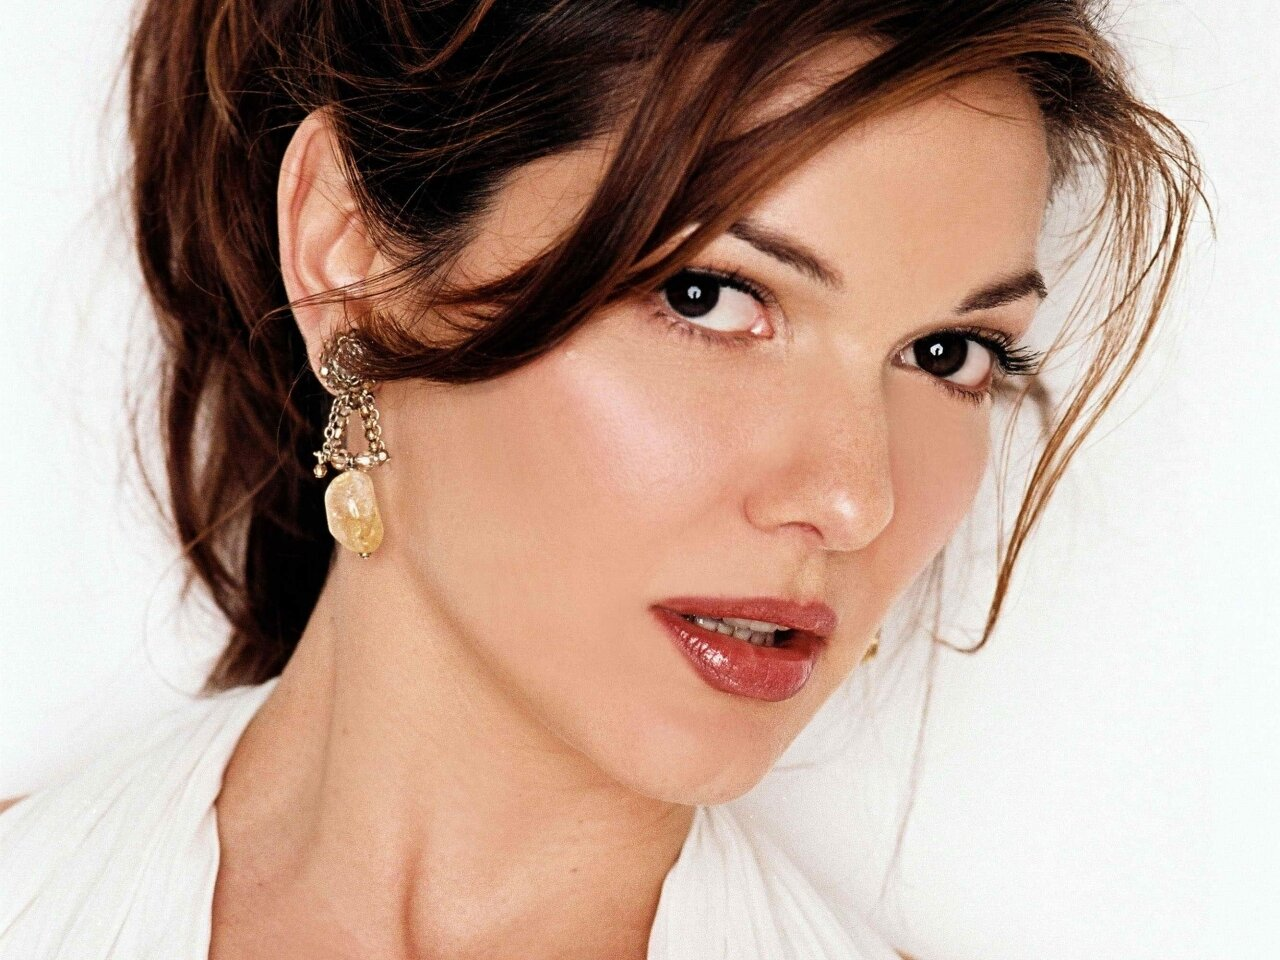 Laura harring actress join